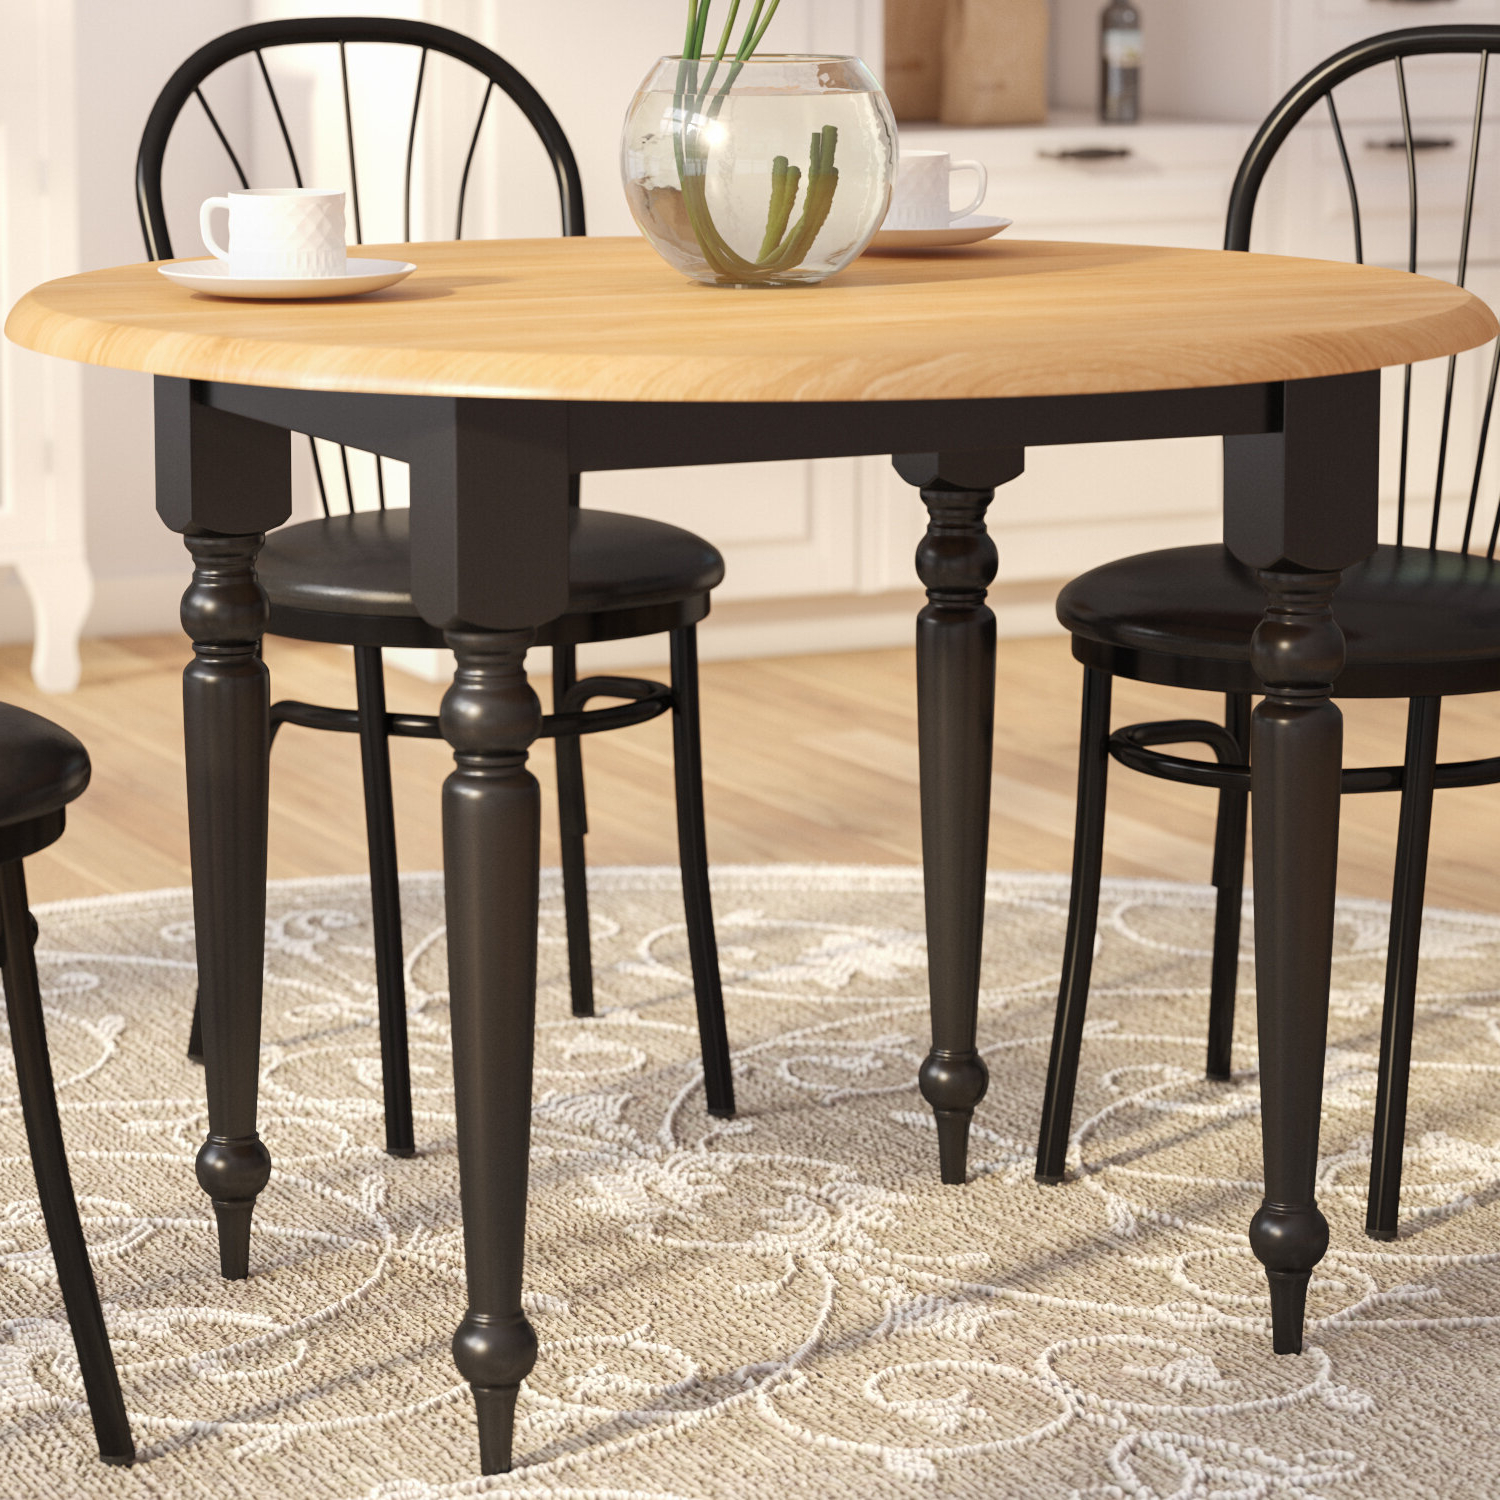 Transitional 4 Seating Double Drop Leaf Casual Dining Tables Within Most Current Andover Mills Belle Haven Extendable Drop Leaf Dining Table (View 10 of 25)